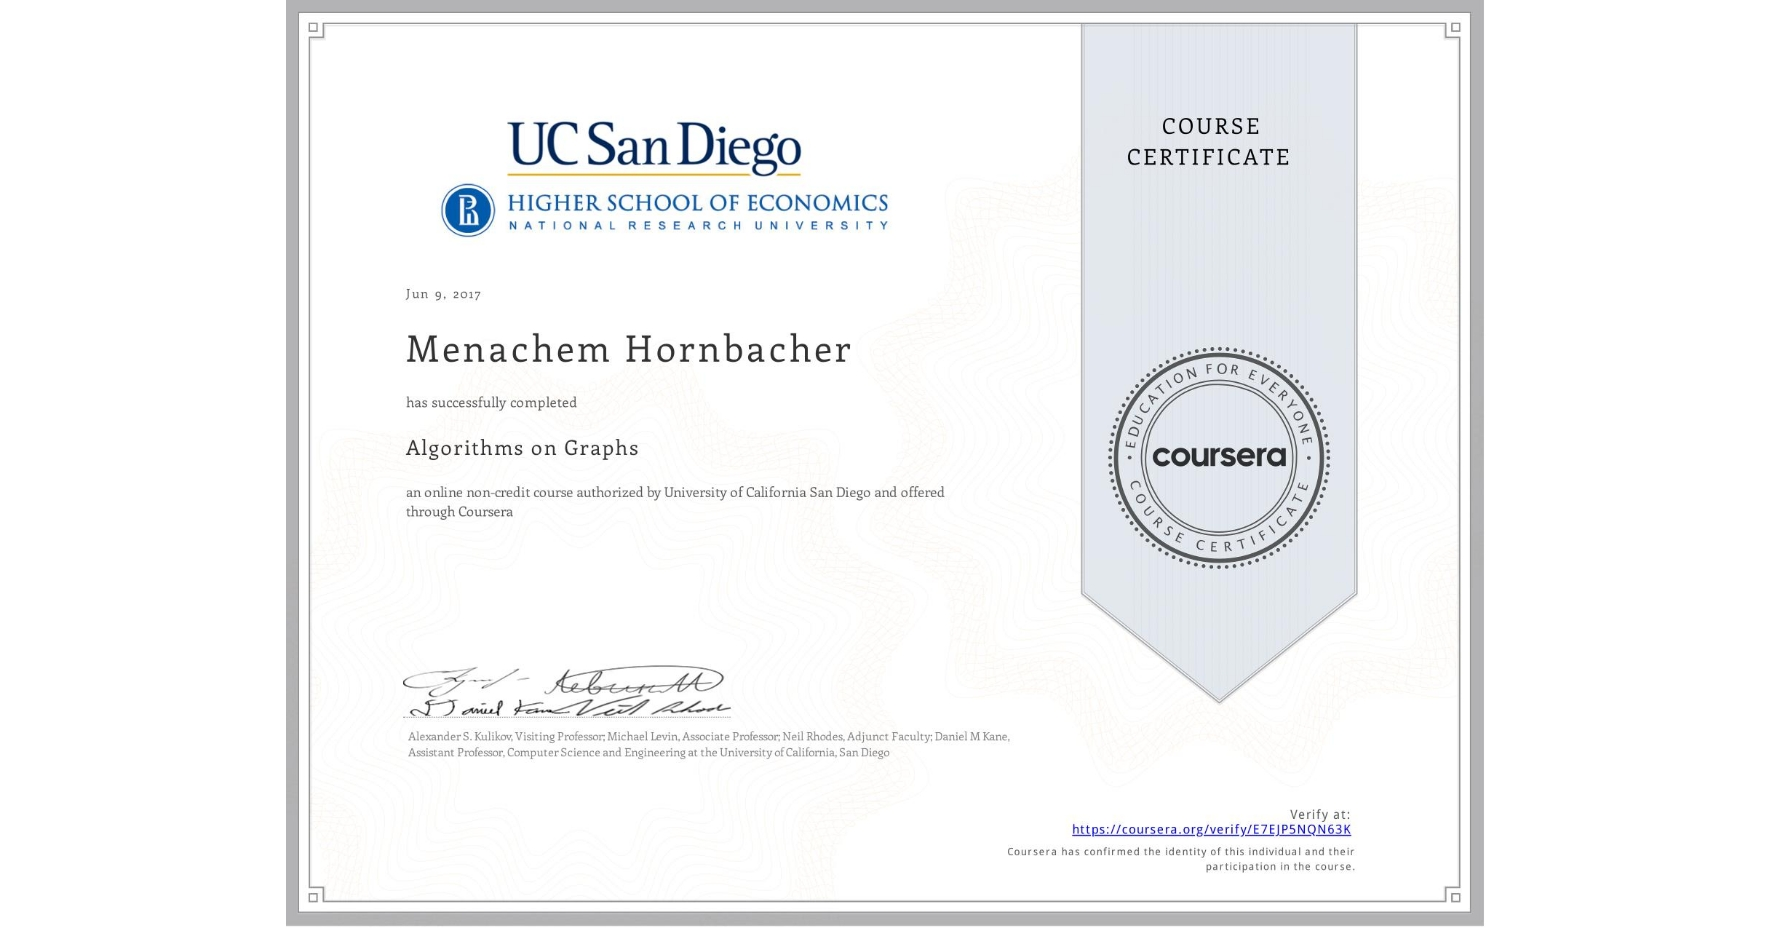 View certificate for Menachem Hornbacher, Algorithms on Graphs, an online non-credit course authorized by University of California San Diego & HSE University and offered through Coursera